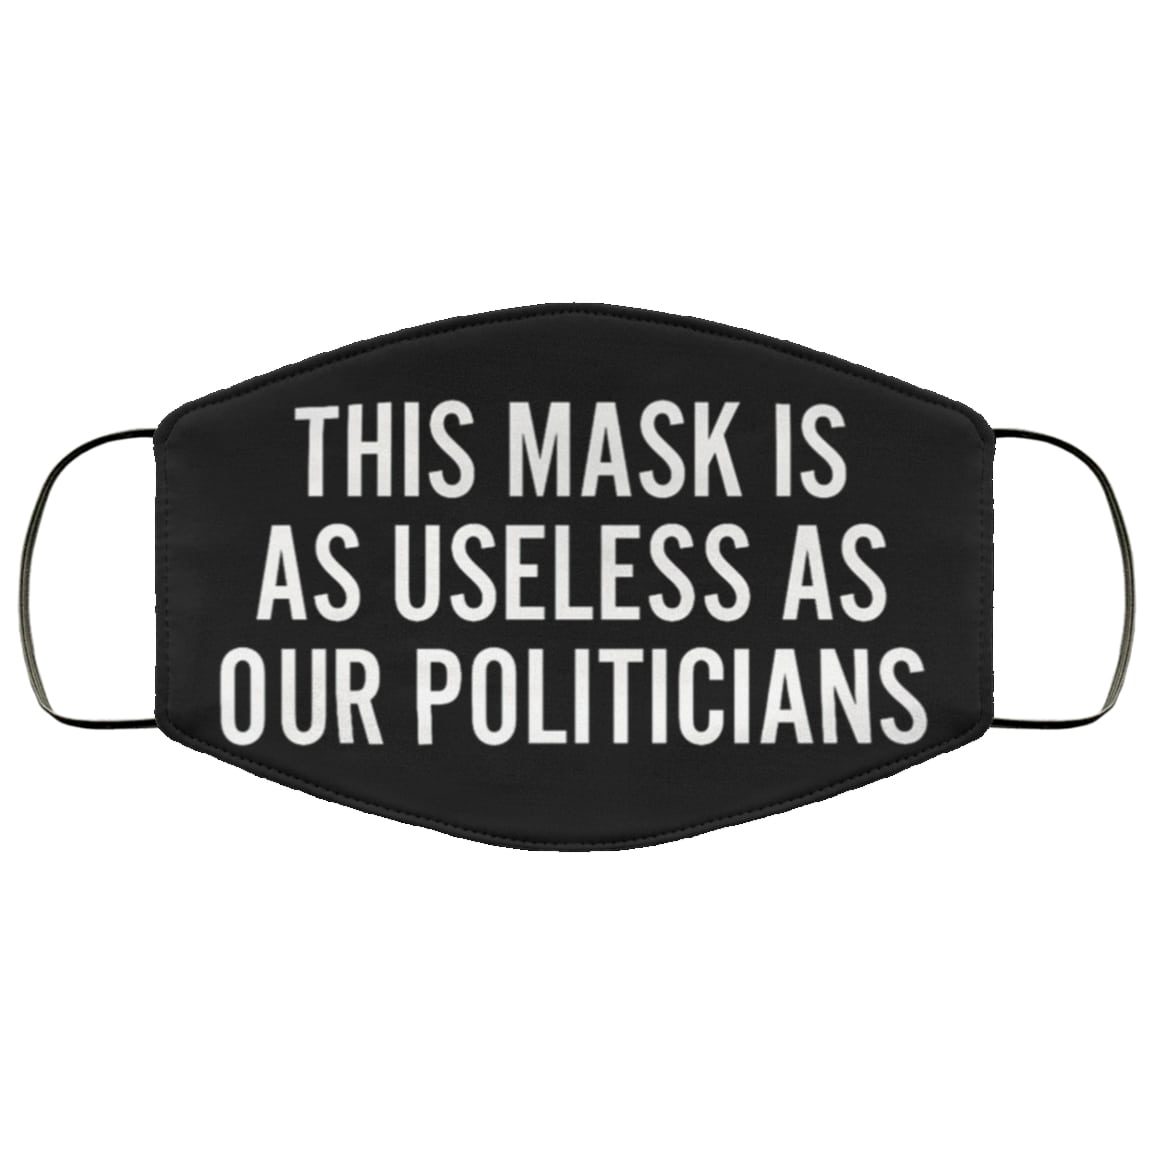 This mask is as useless as our politicians face mask 3